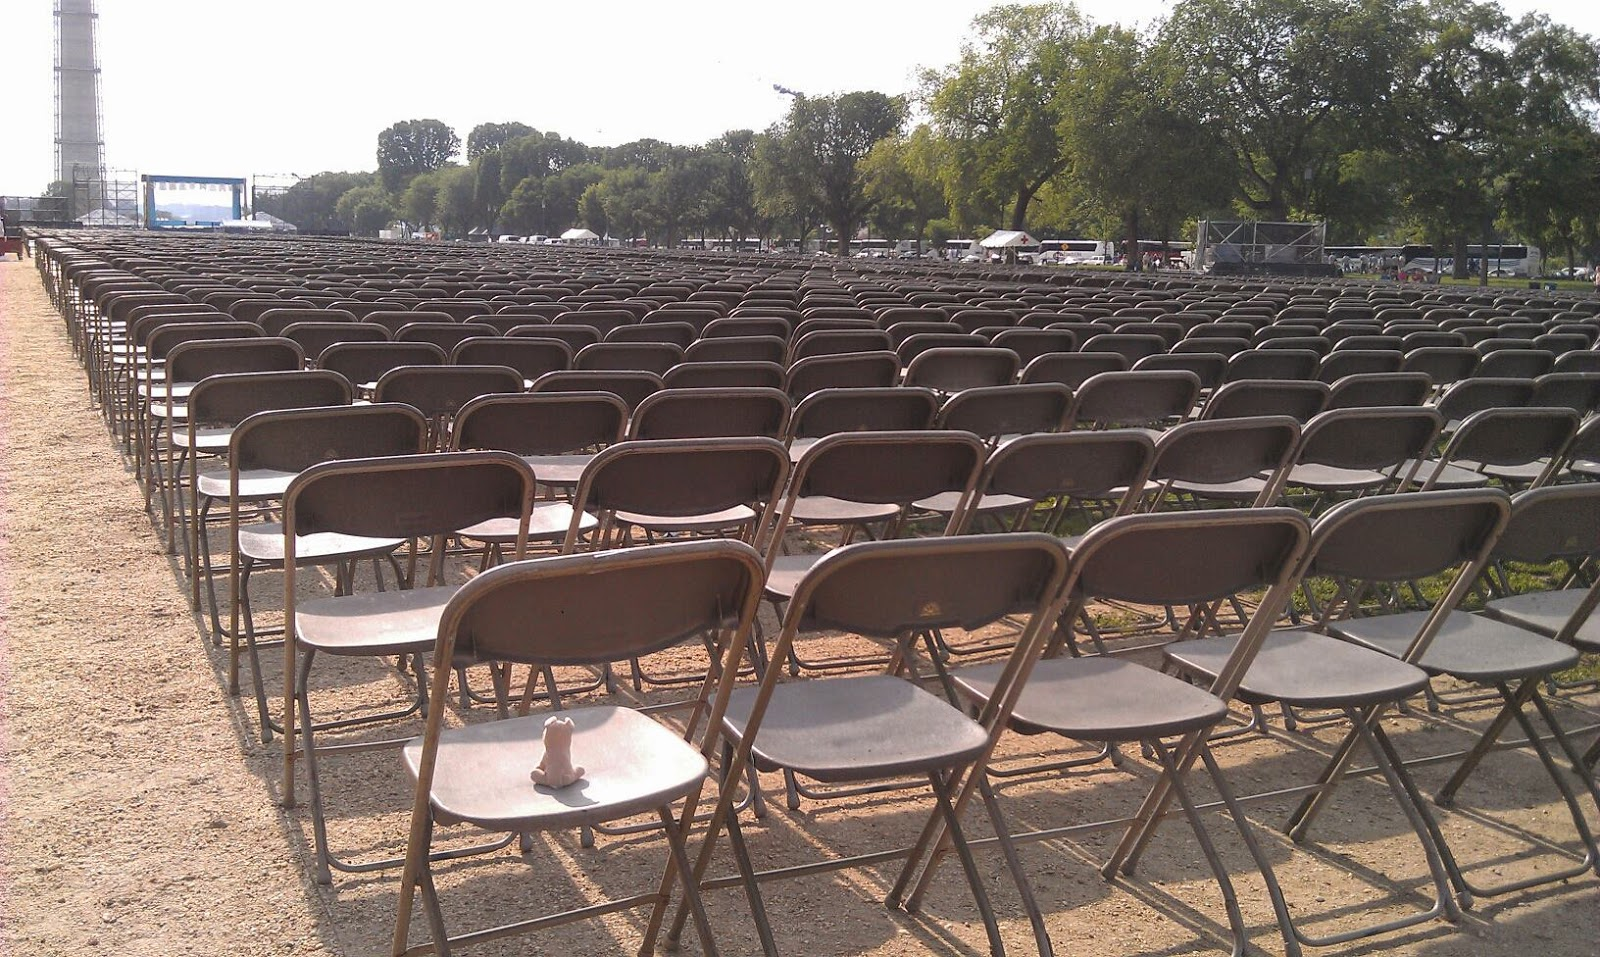 dc_empty_chairs.jpg